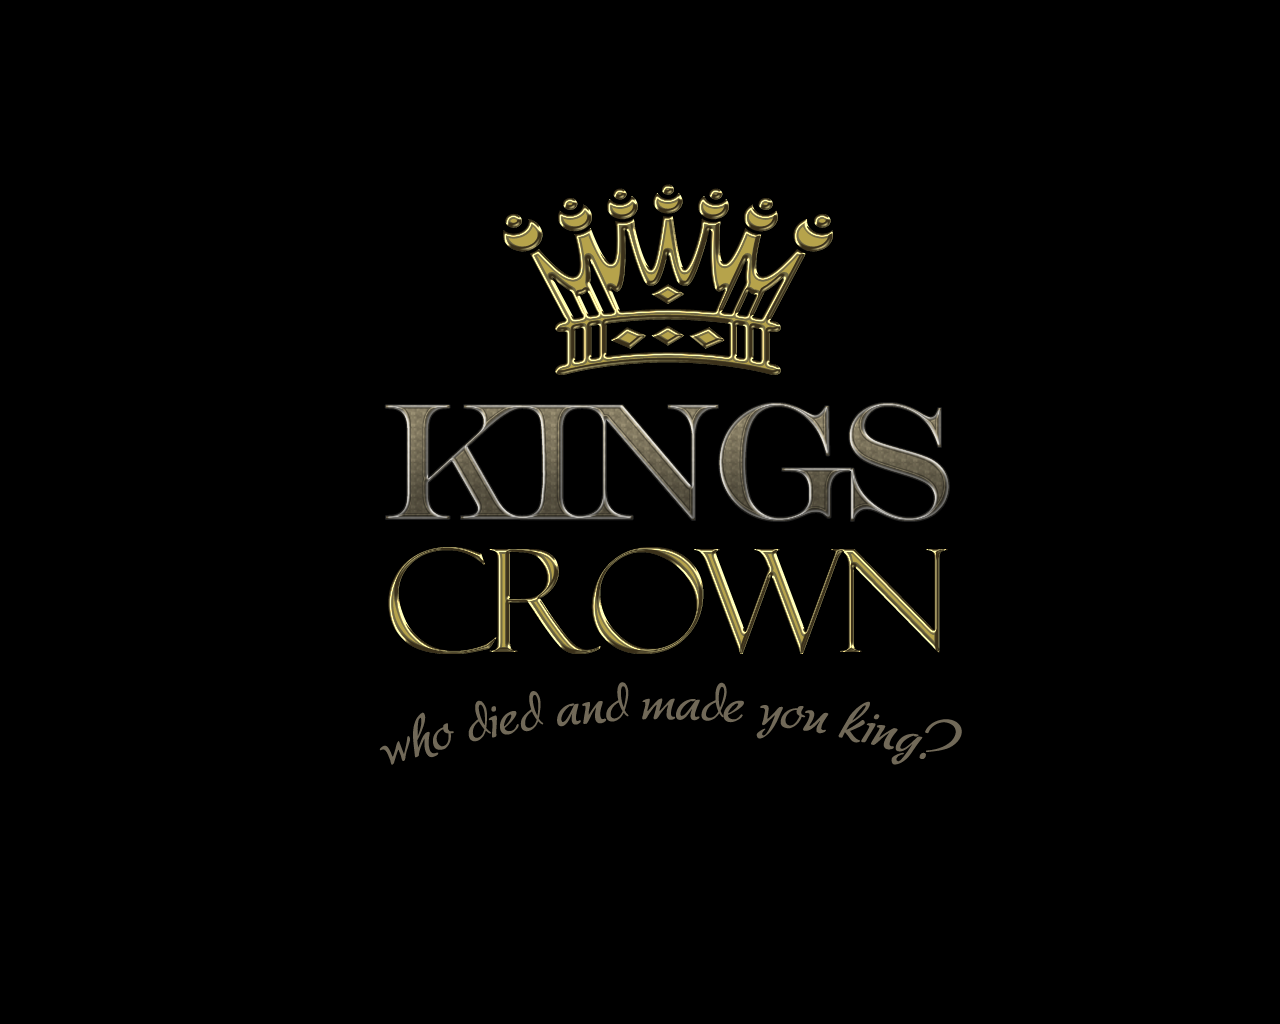 King Crown Wallpapers Kings Crown Iphone Wallpaper King Ovo Wallpaper